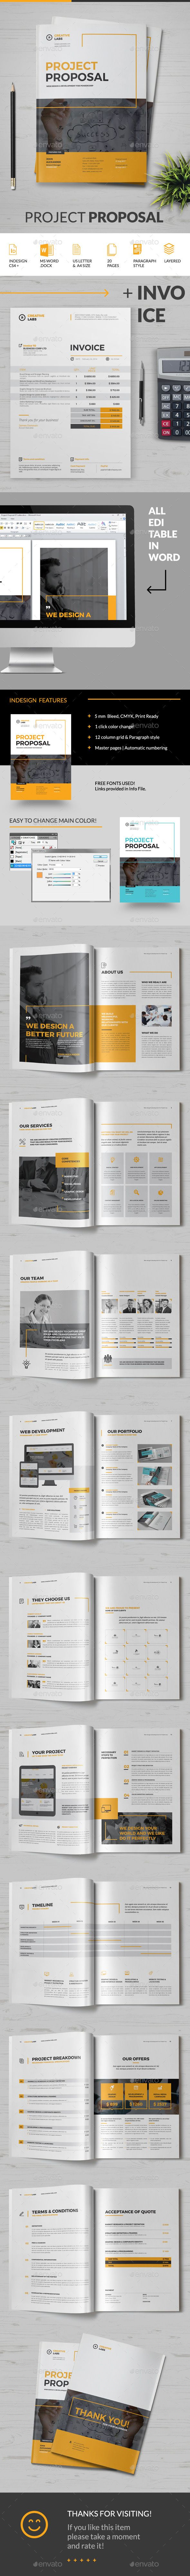 Proposal by sabin_vp ProposalSimpleProposalTemplate with a pleasant appearance is whatyou need in order to gain more clients. With his clean, contempor